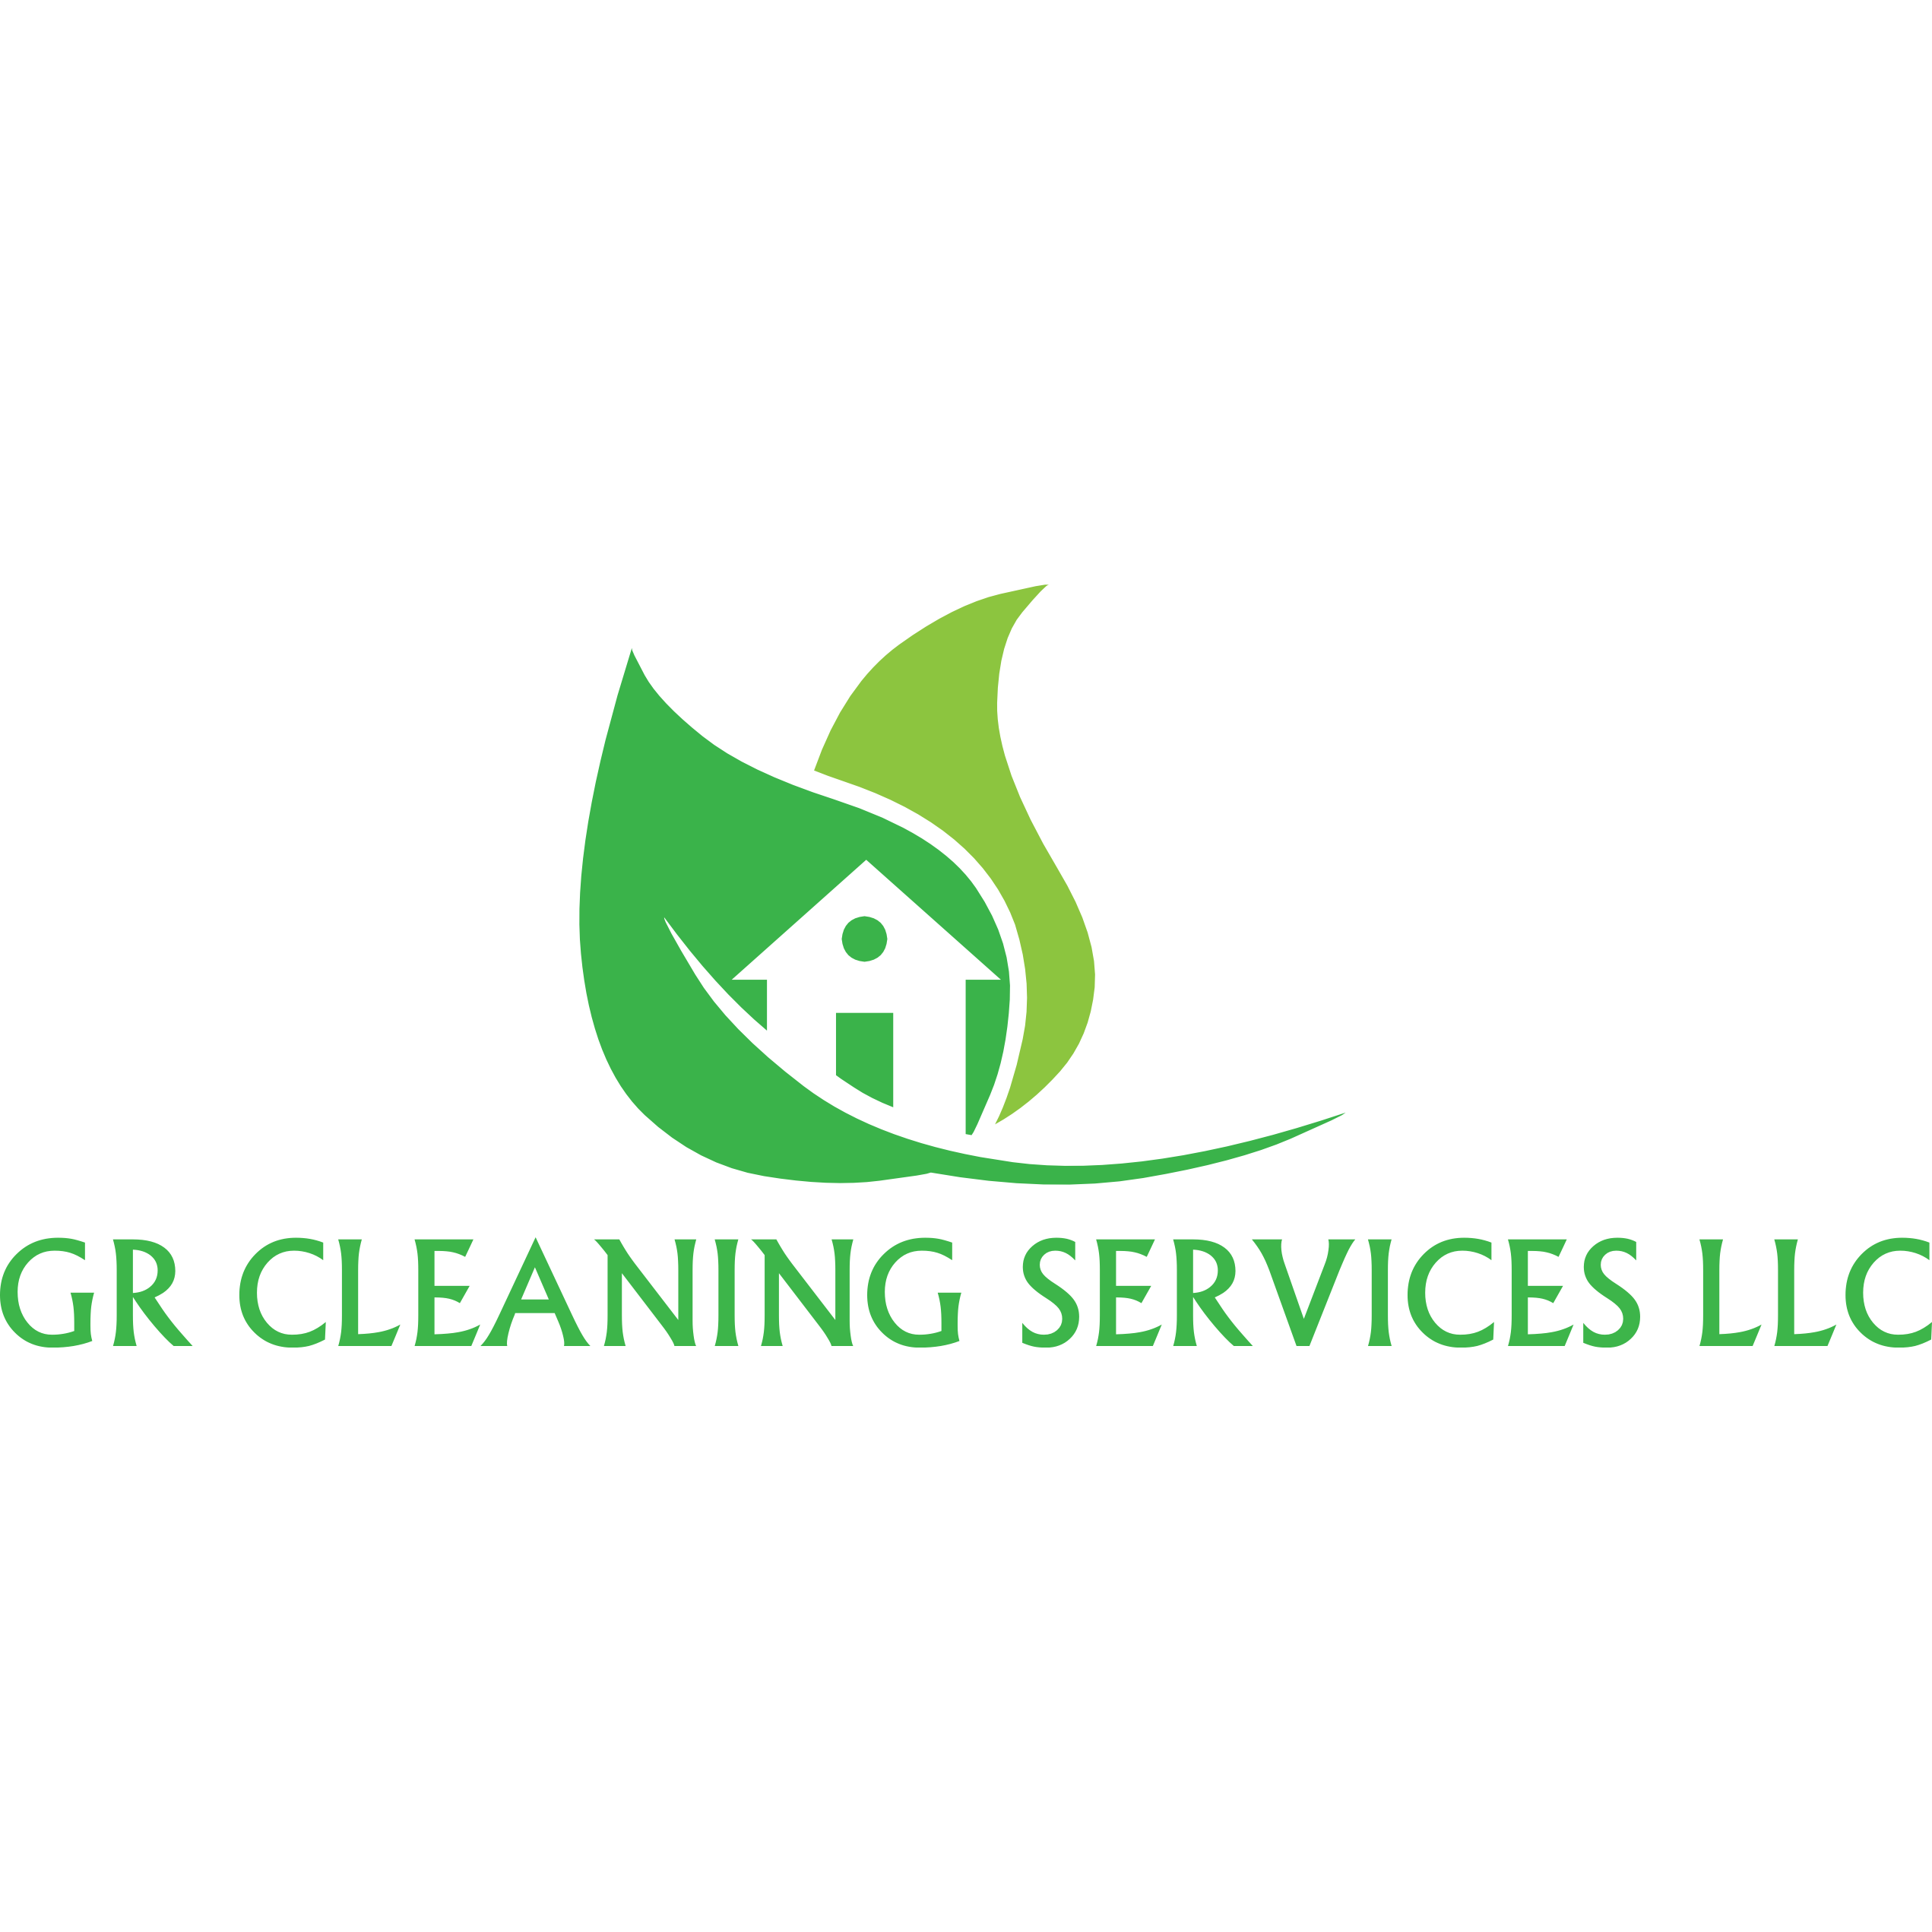 GR Cleaning Services LLC - ad image